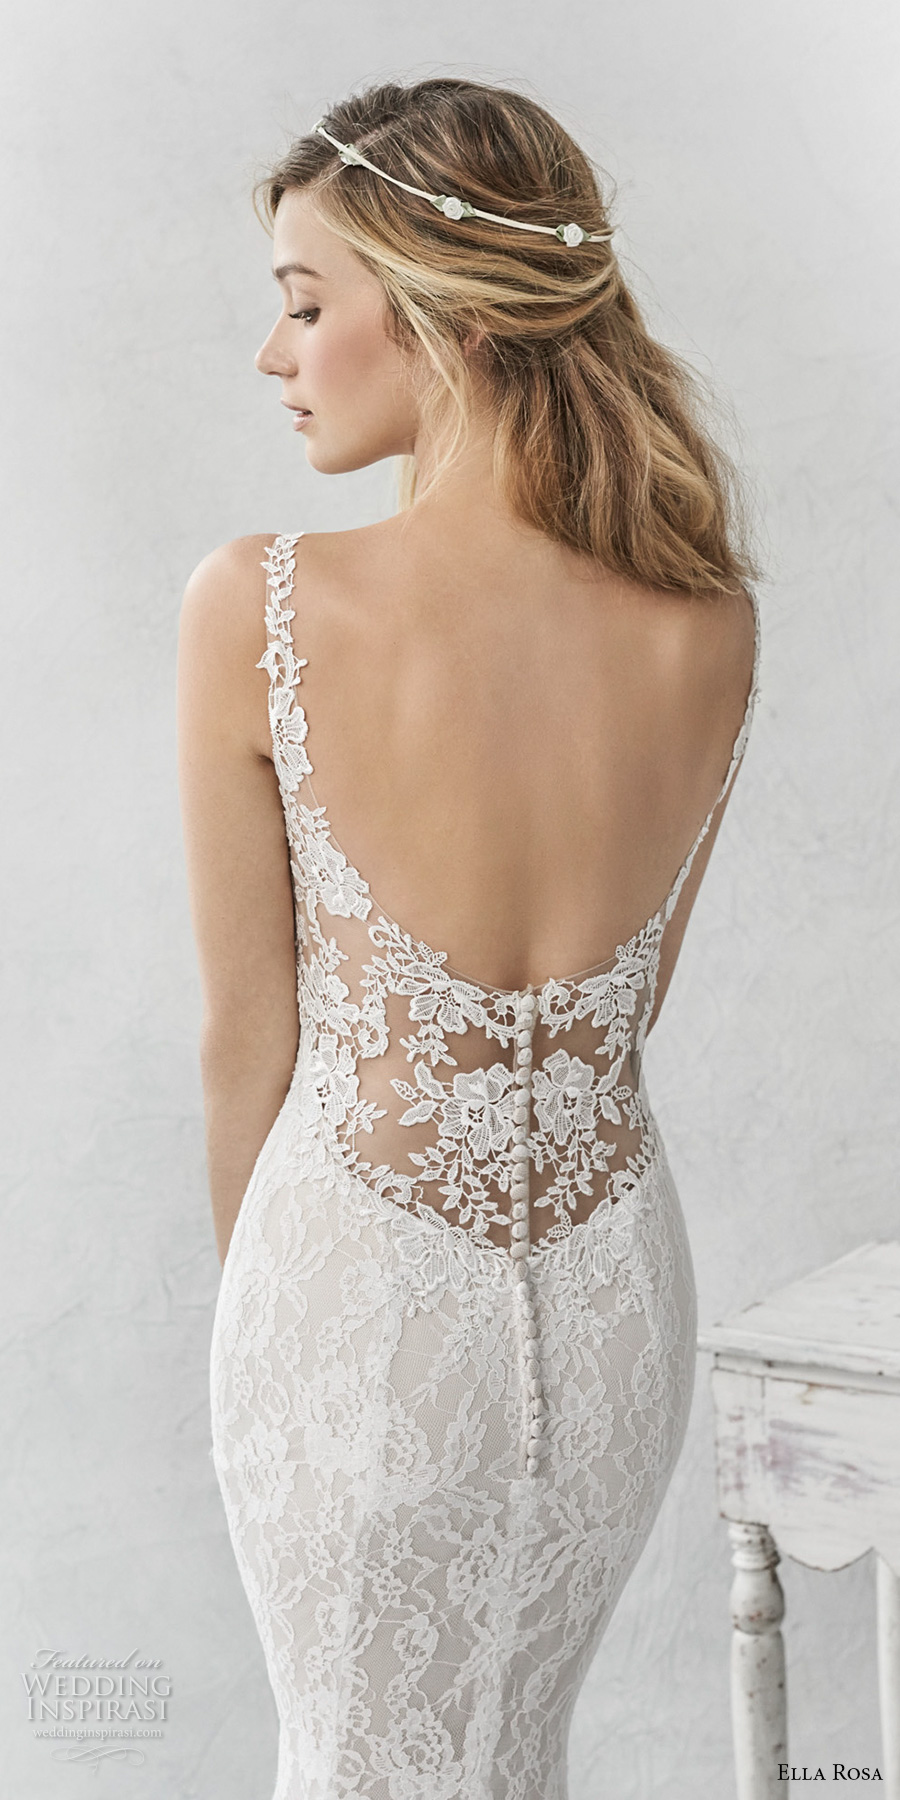 ella rosa spring 2017 bridal sleeveless thin strap sweetheart neckline full embellishment elegant sheath fit flare wedding dress open back chapel train (365) zbv